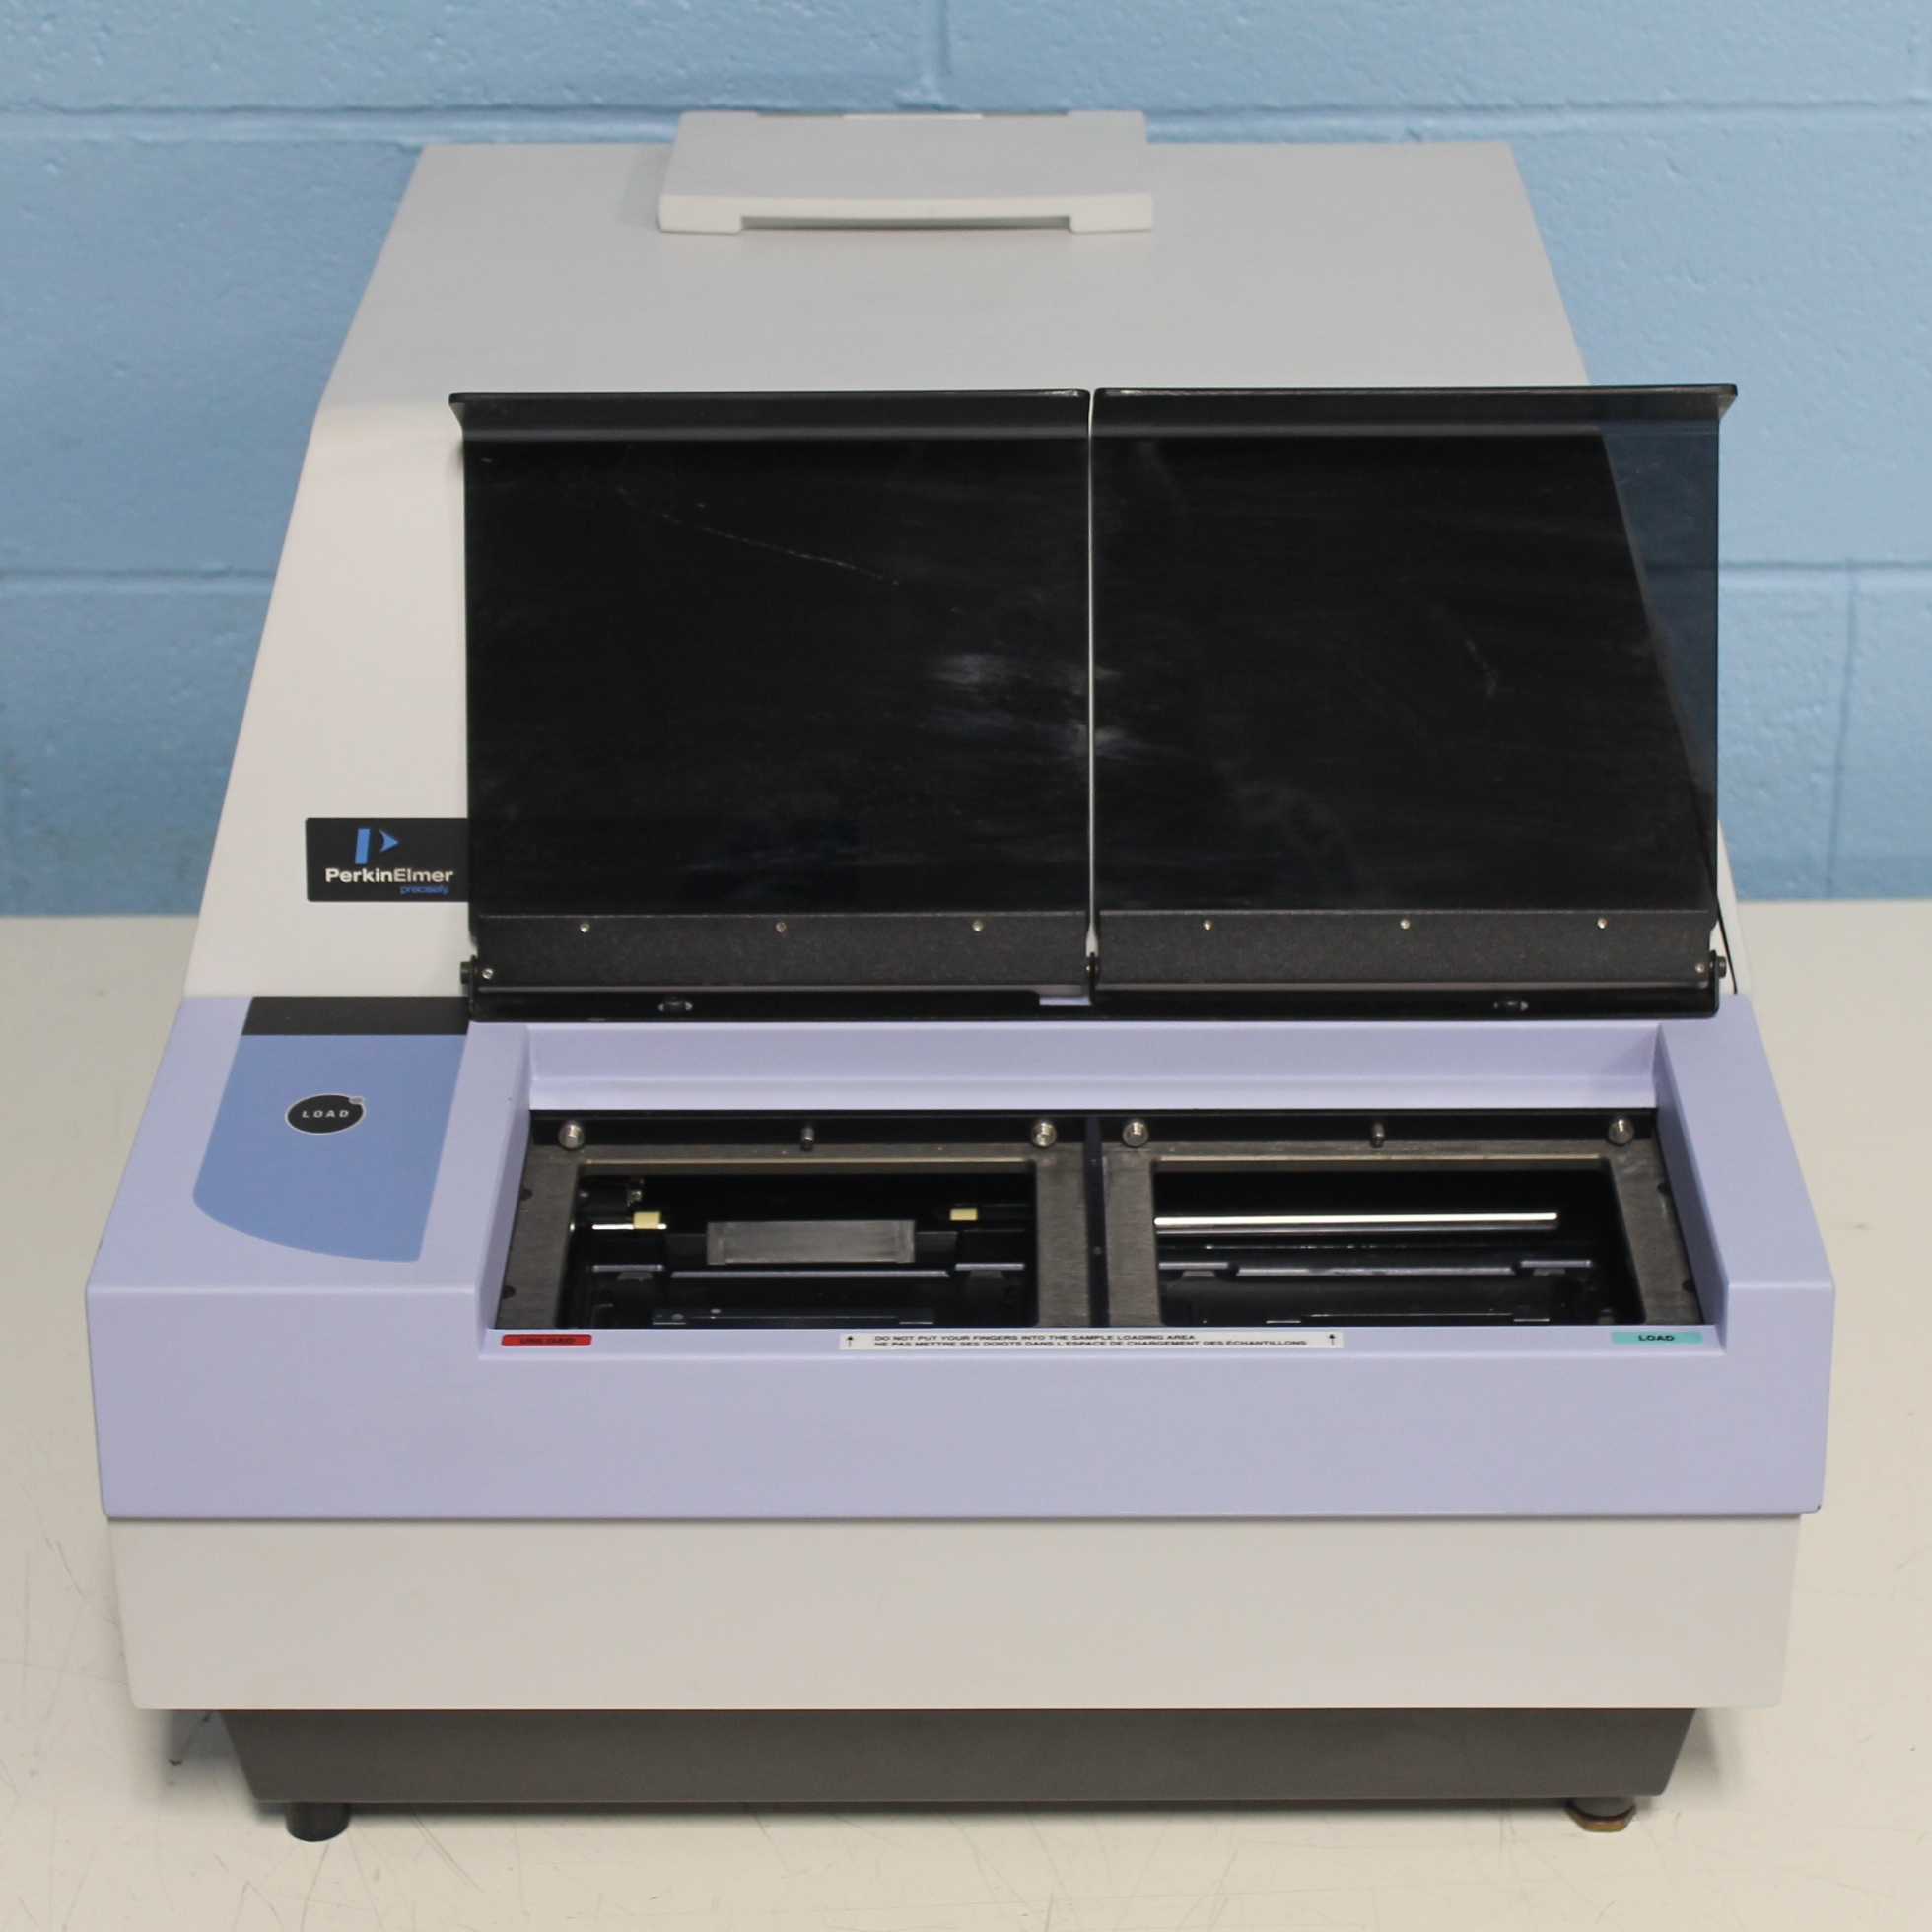 Victor3 V 1420-041 Multilabel Plate Reader Name